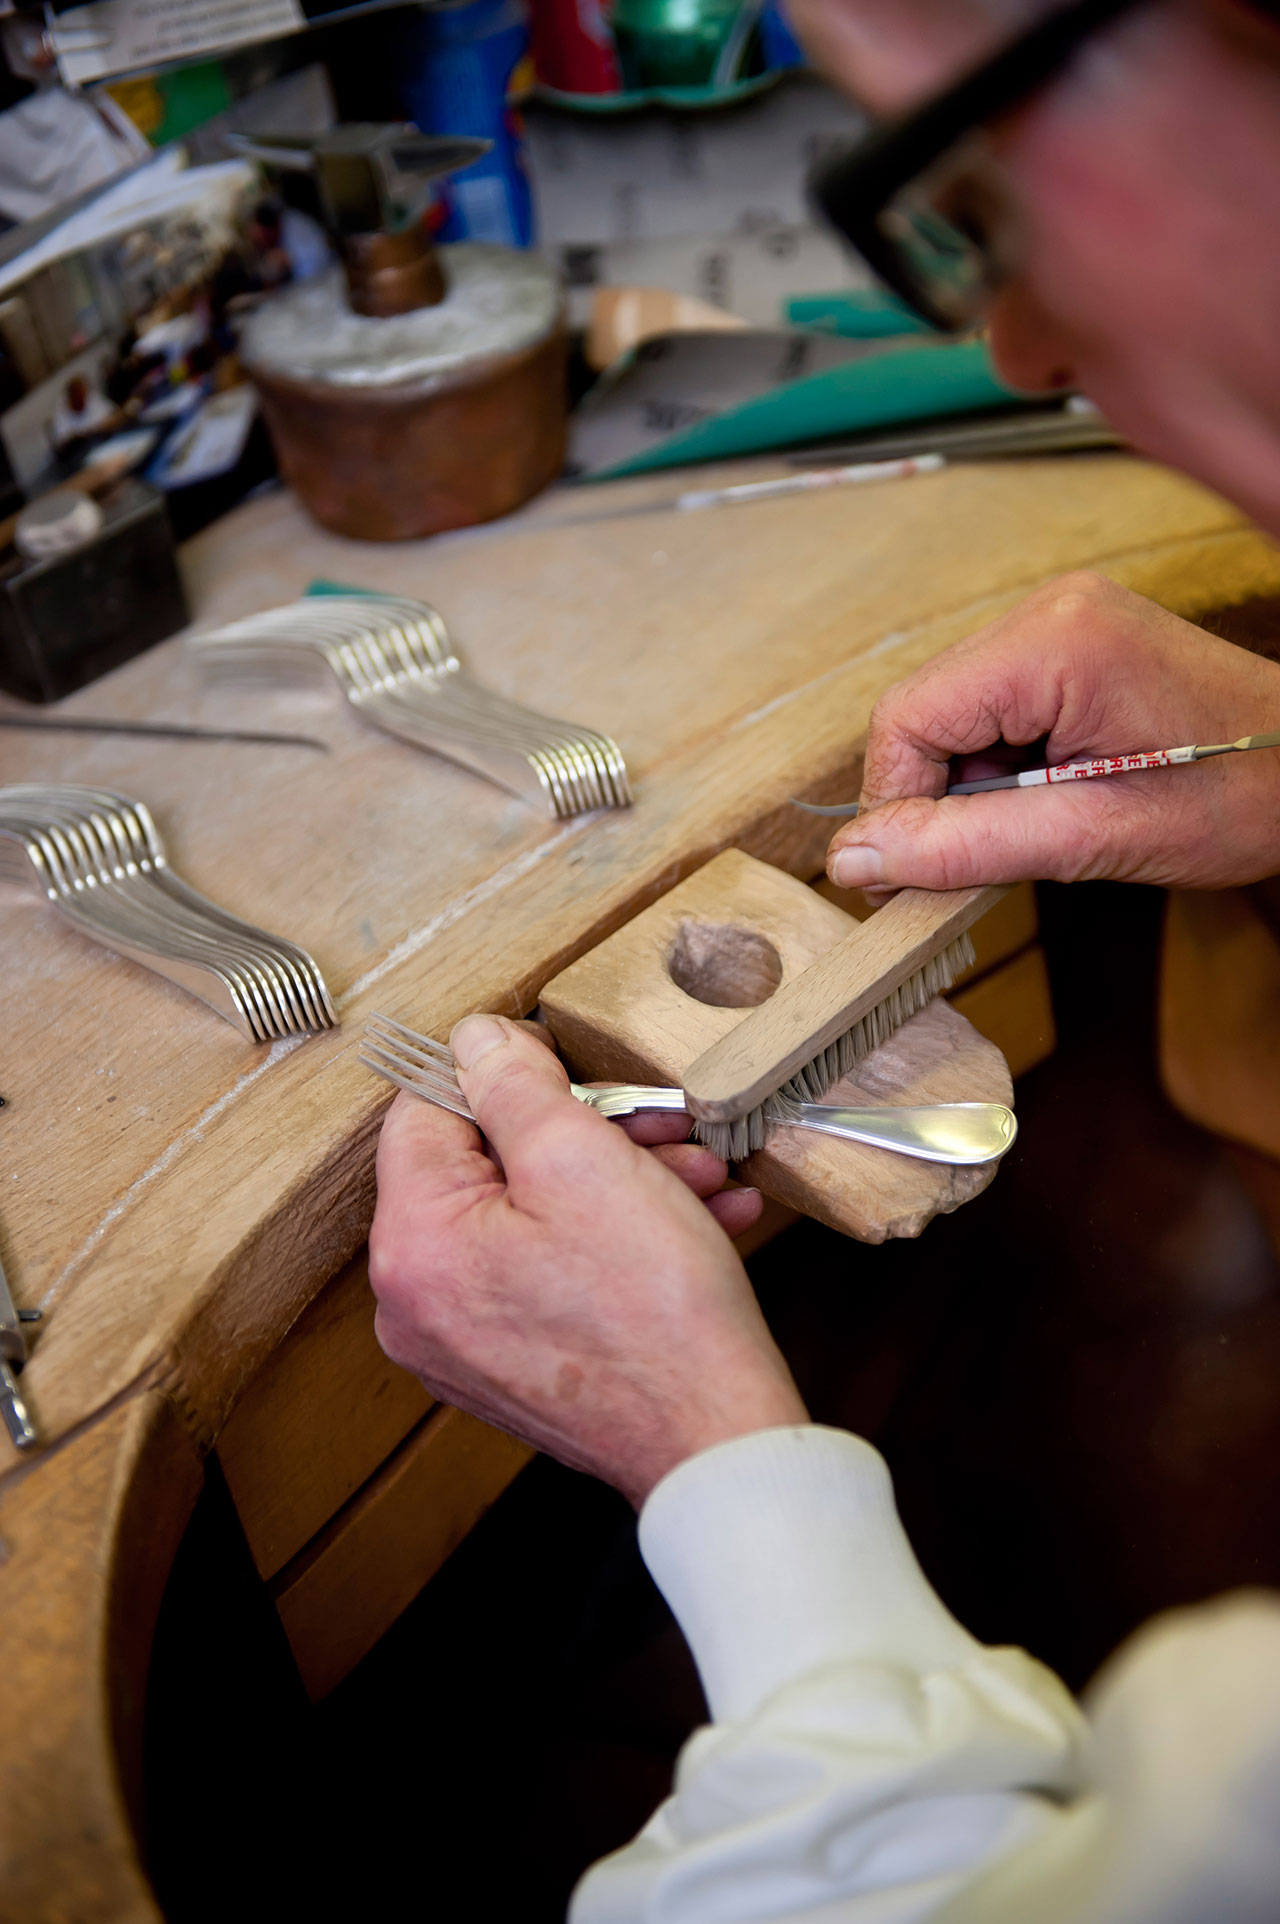 A silversmith working on a set of forks at the Puiforcat workshop. Photo by Alexandre & Emilie {Persona production} for Yatzer. Copyright © Yatzerland Ltd.